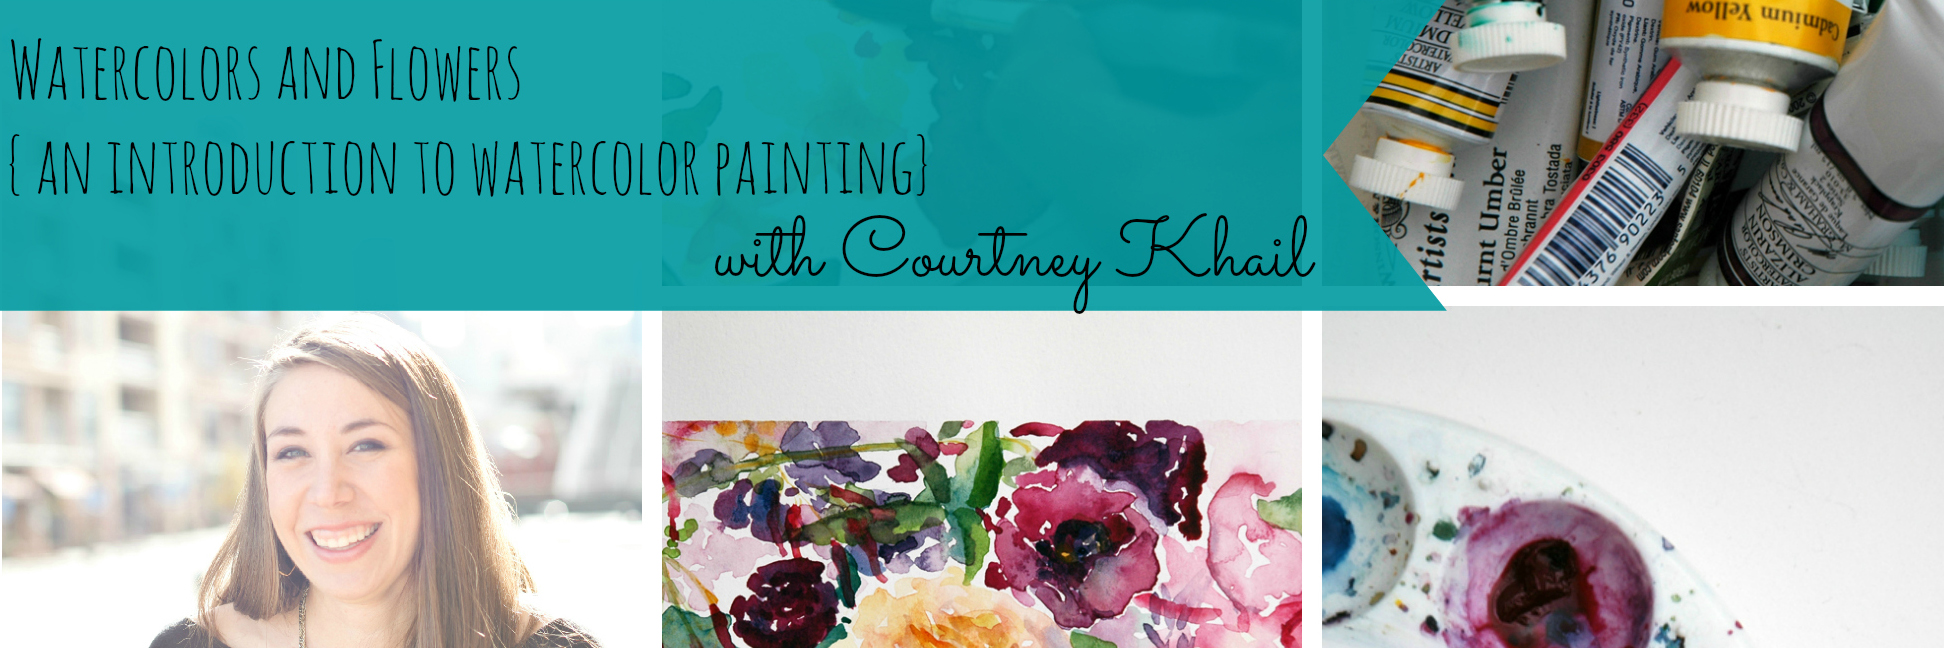 watercolor with courtney khail detail